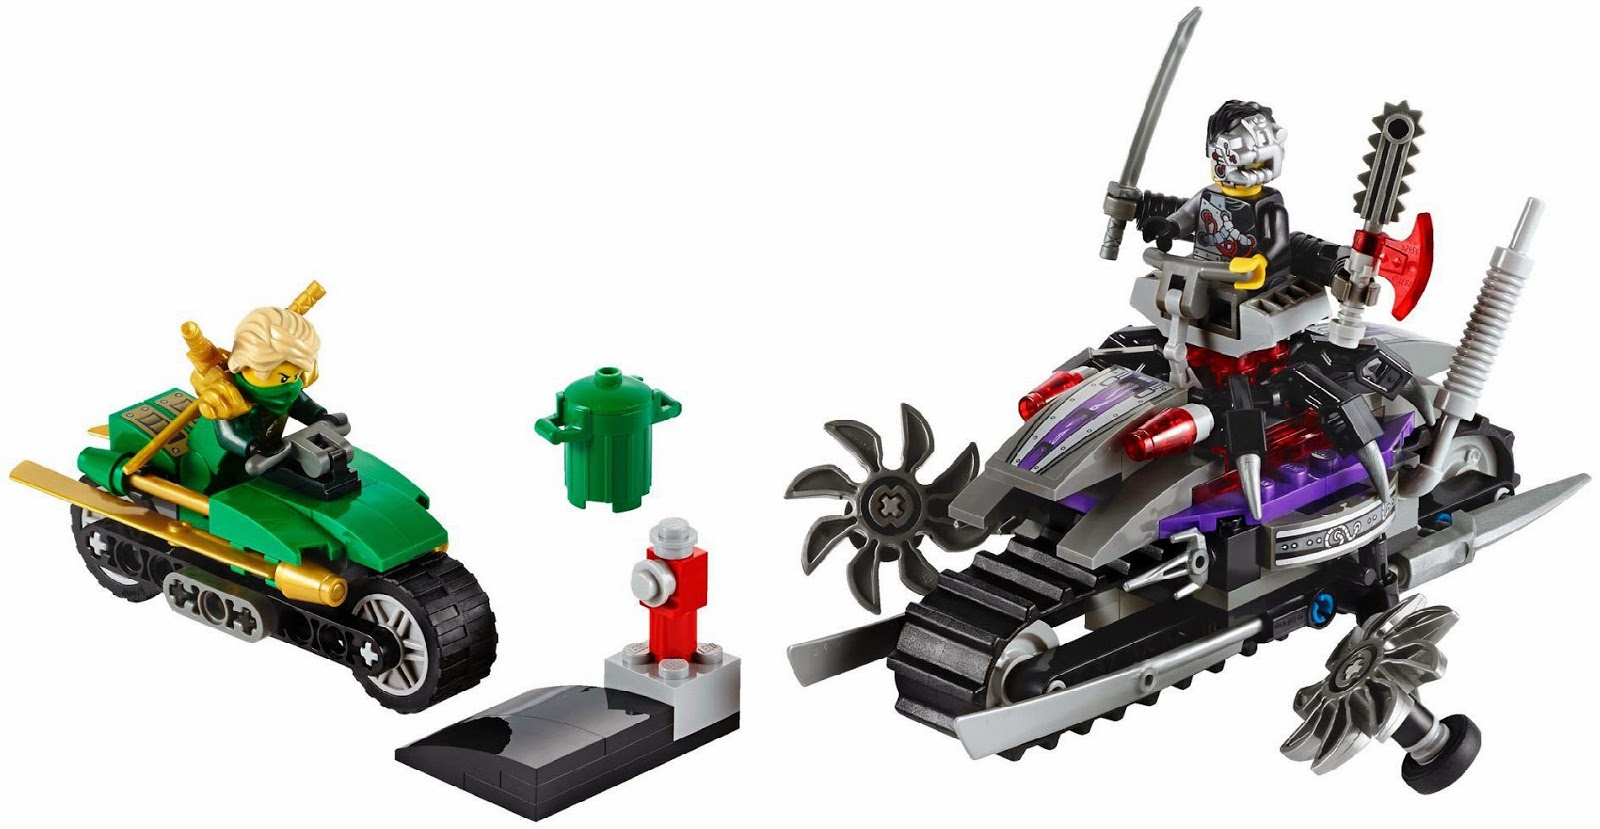 This set is with 207pcs, 2 vehicles - an all terrain tank bike and a